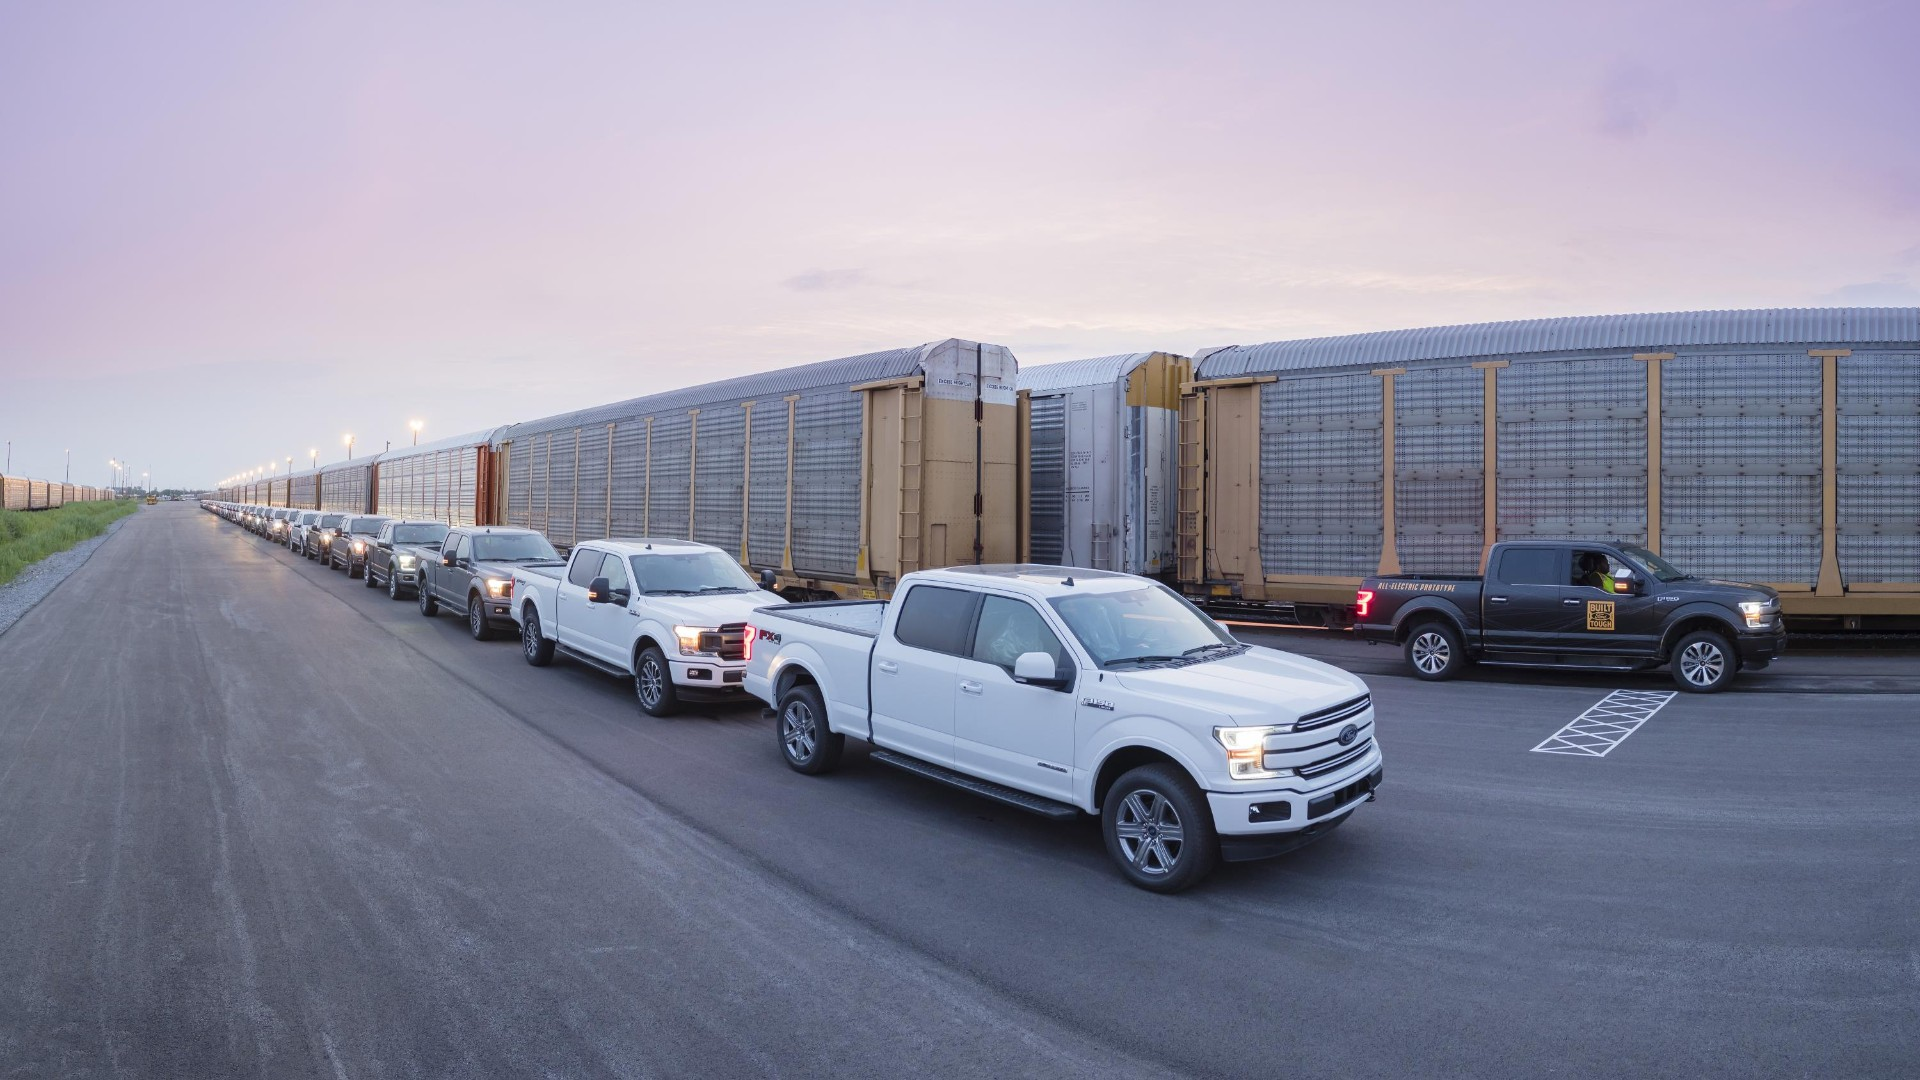 Ford's all-electric F-150 can pull over 1 million pounds